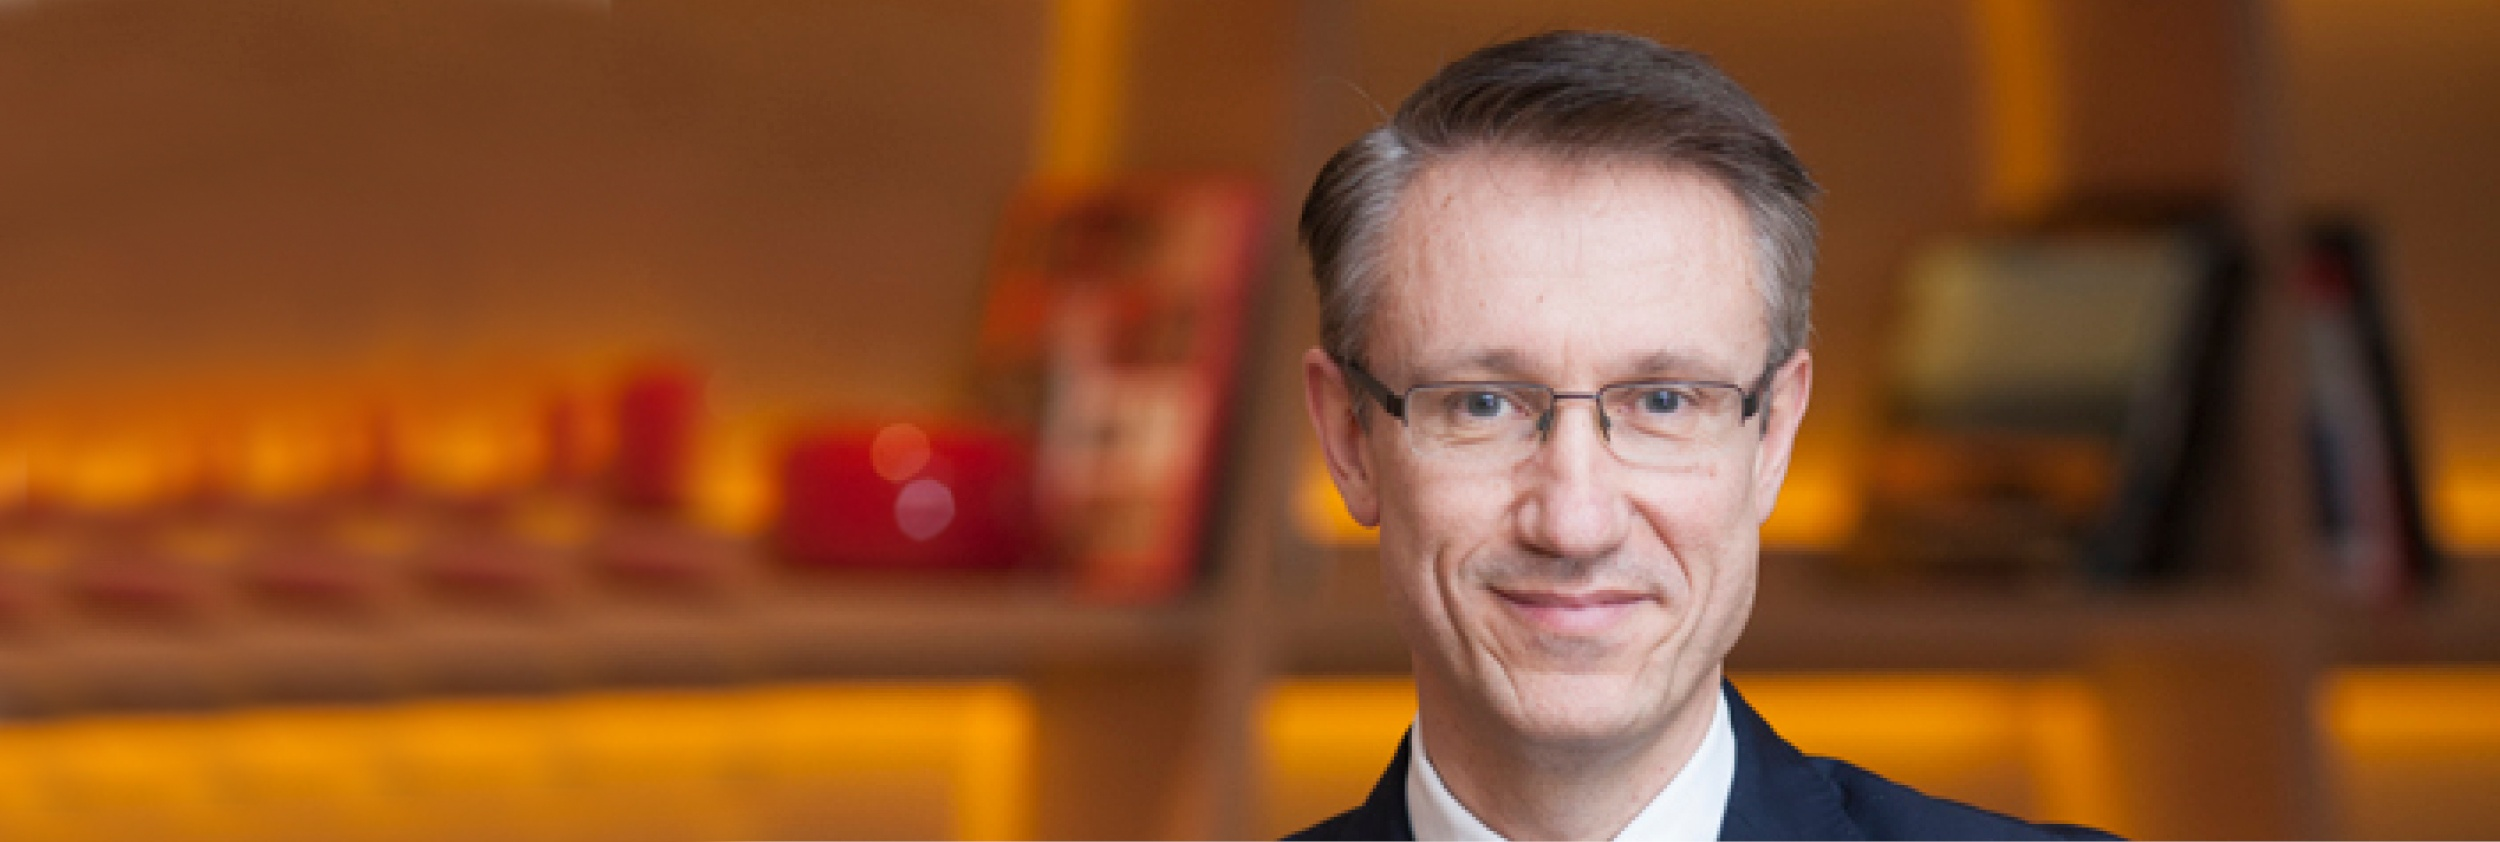 How to run an efficient hotel operation: Q&A with Vincent Dujardin from AccorHotels